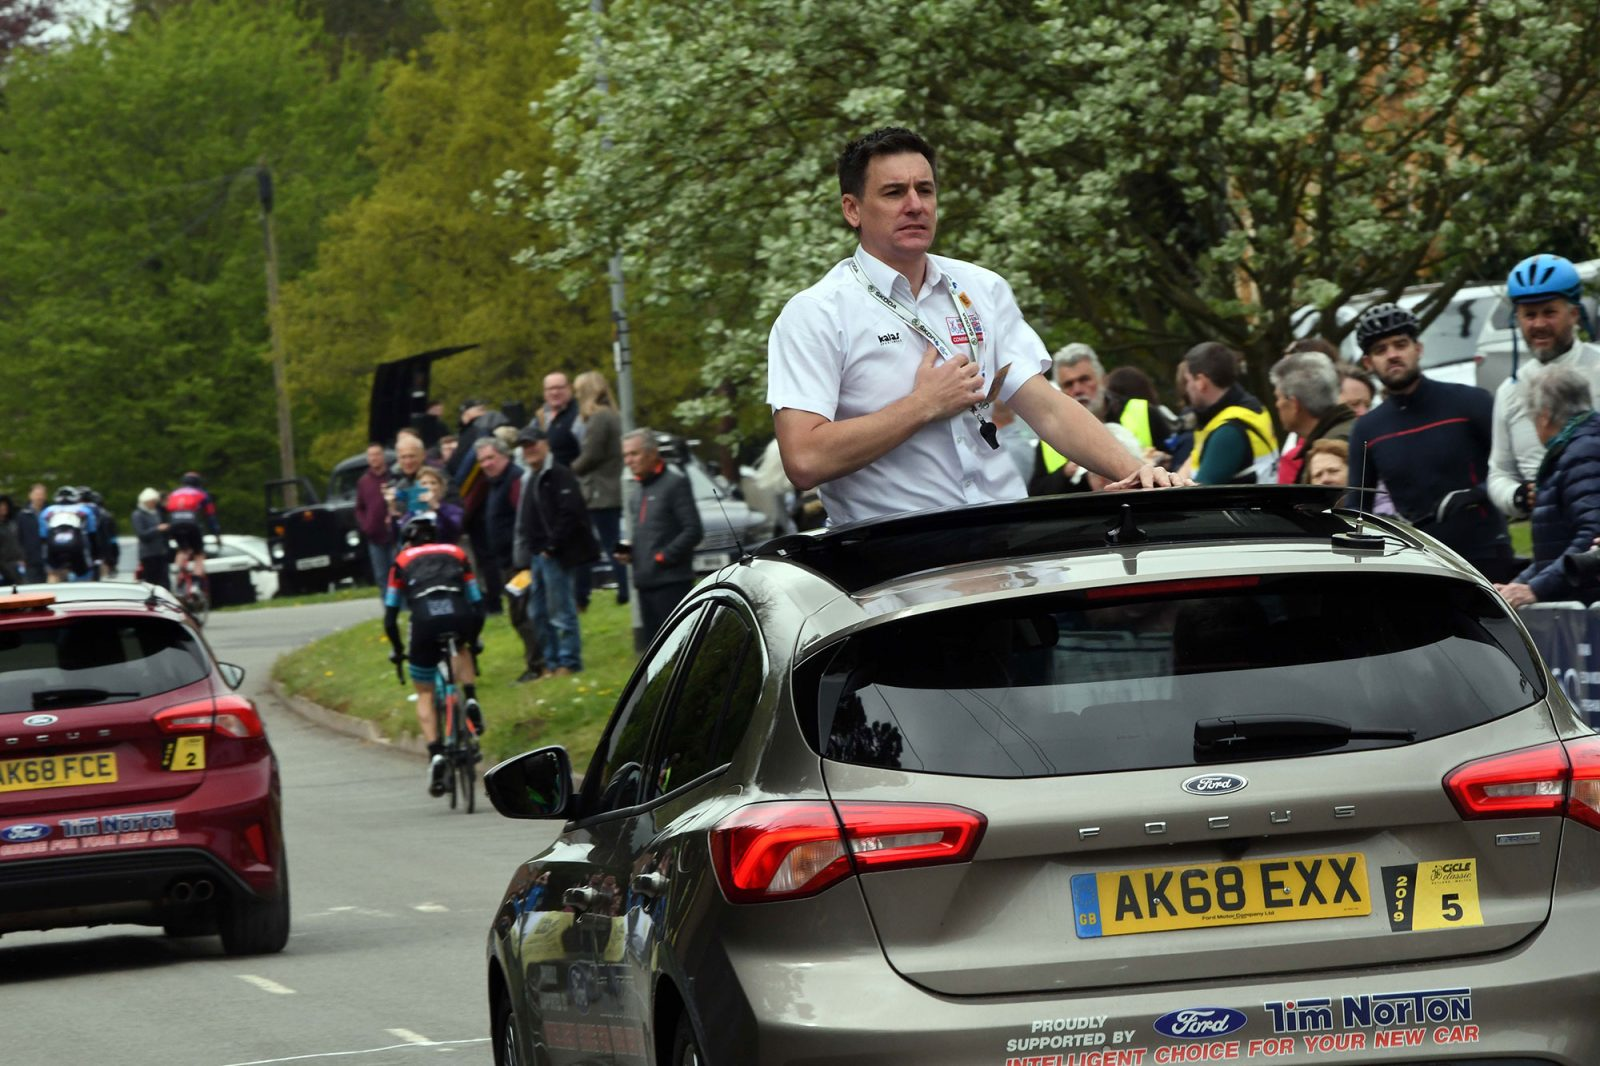 marc etches commissare british cycling